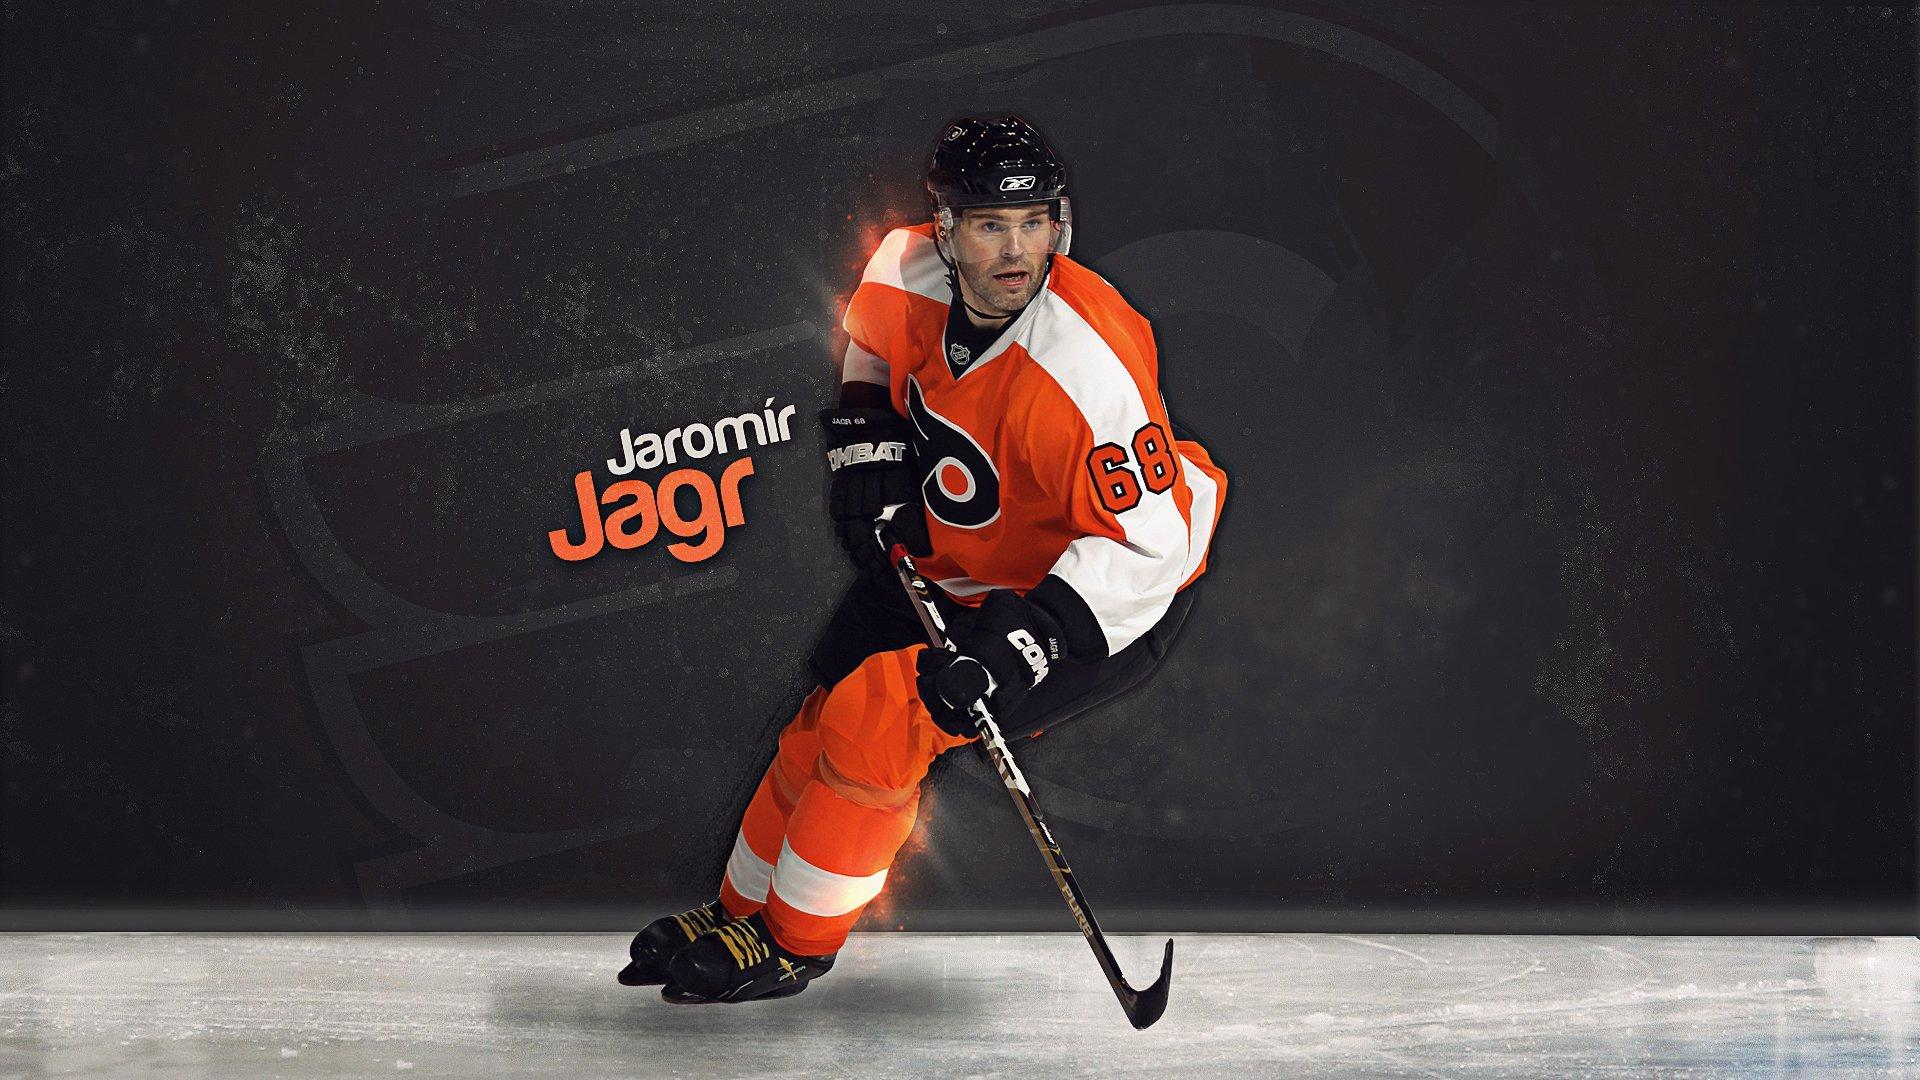 NHL Philadelphia Flyers Jaromir Jagr wallpapers 2018 in Hockey